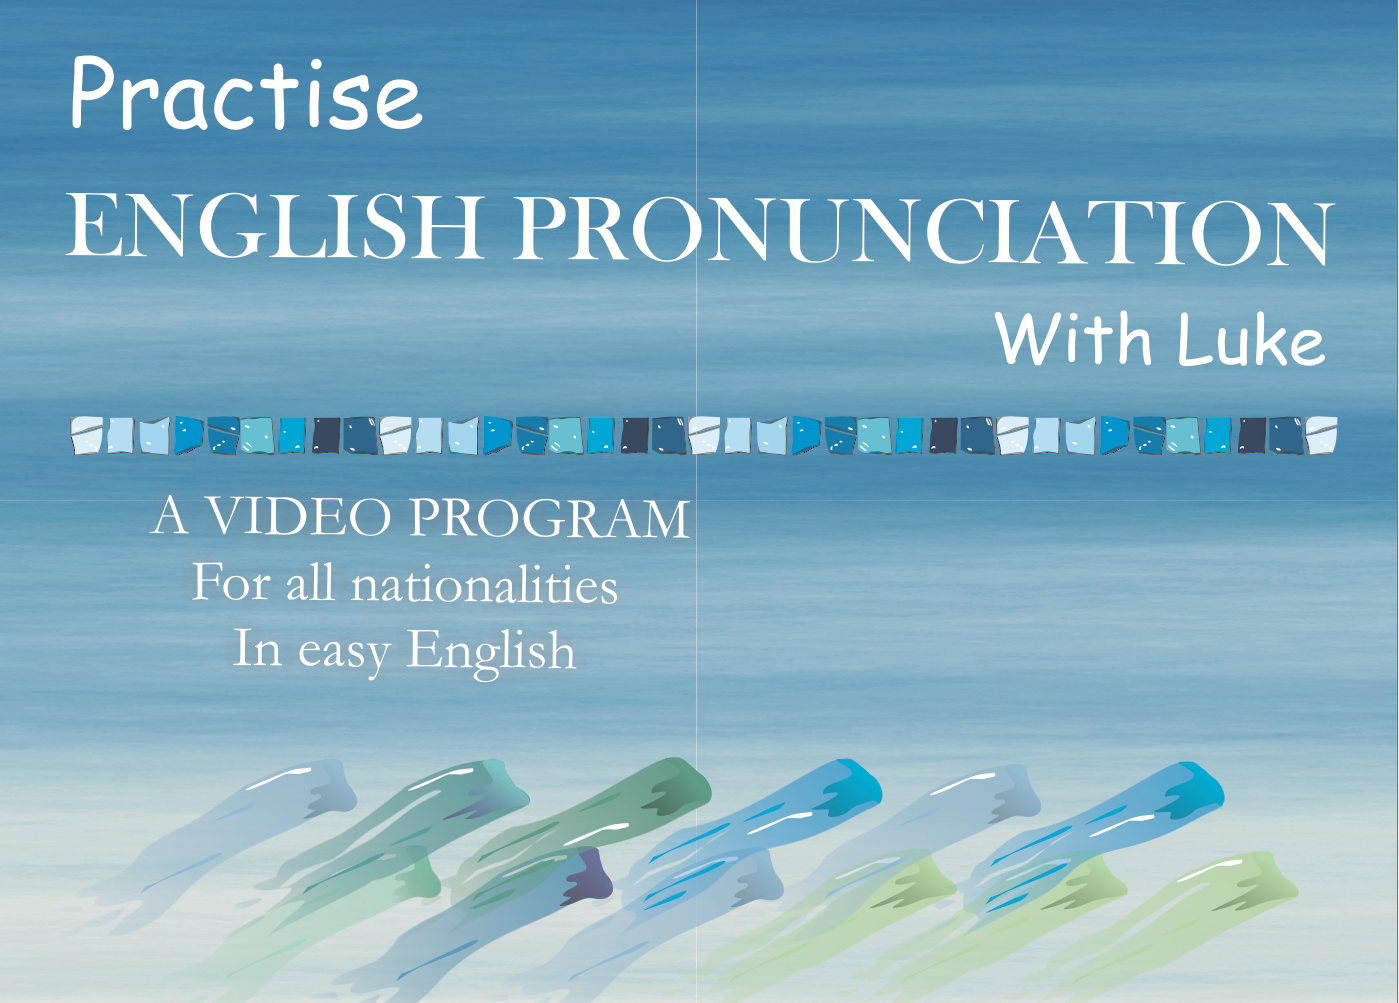 Practise English Pronunciation with Luke